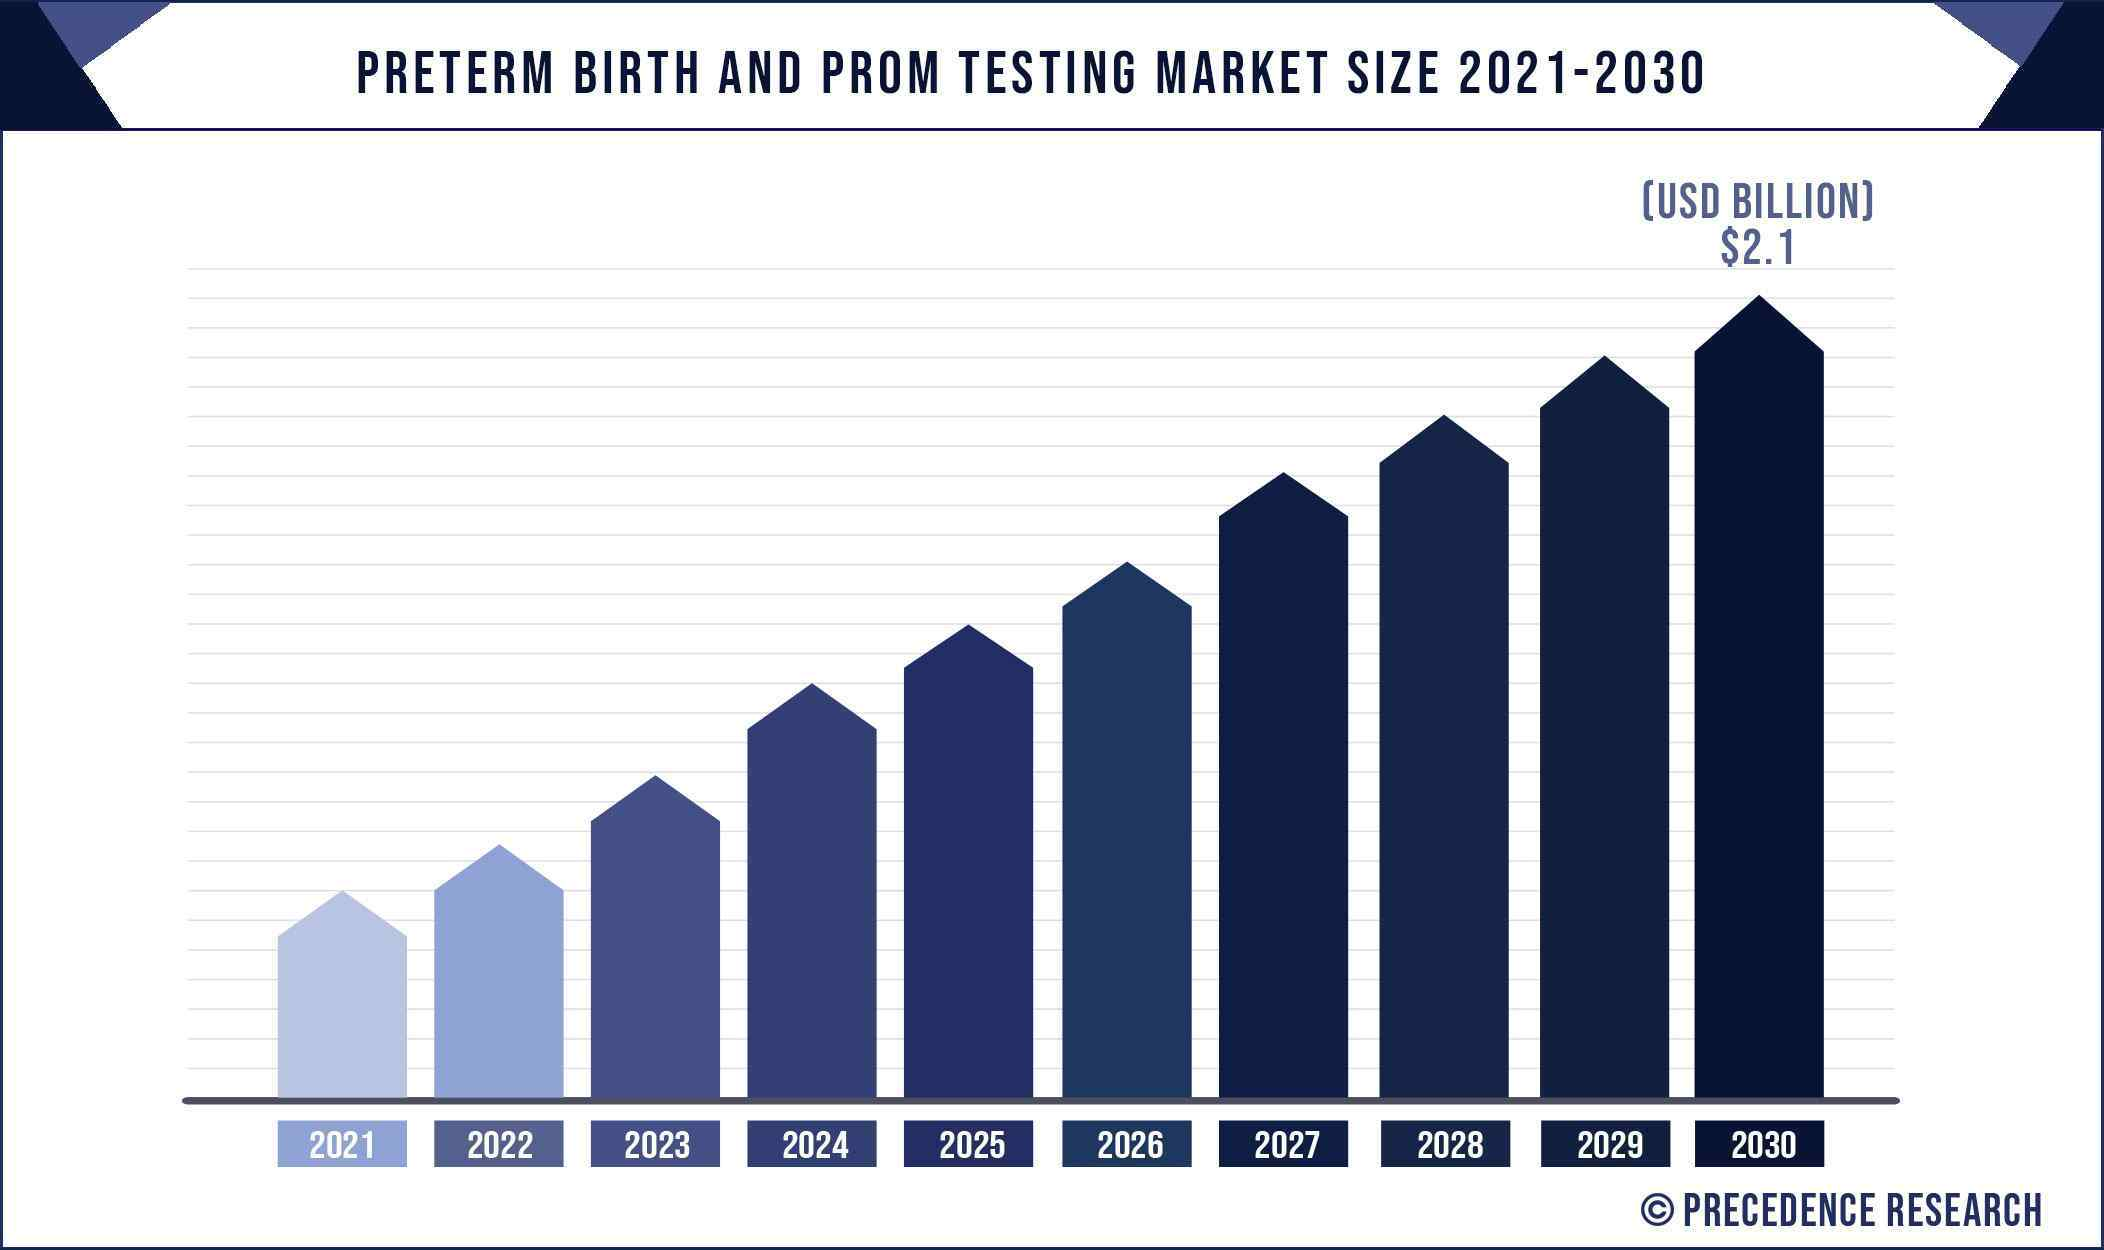 Preterm Birth and PROM Testing Market Size 2021 to 2030